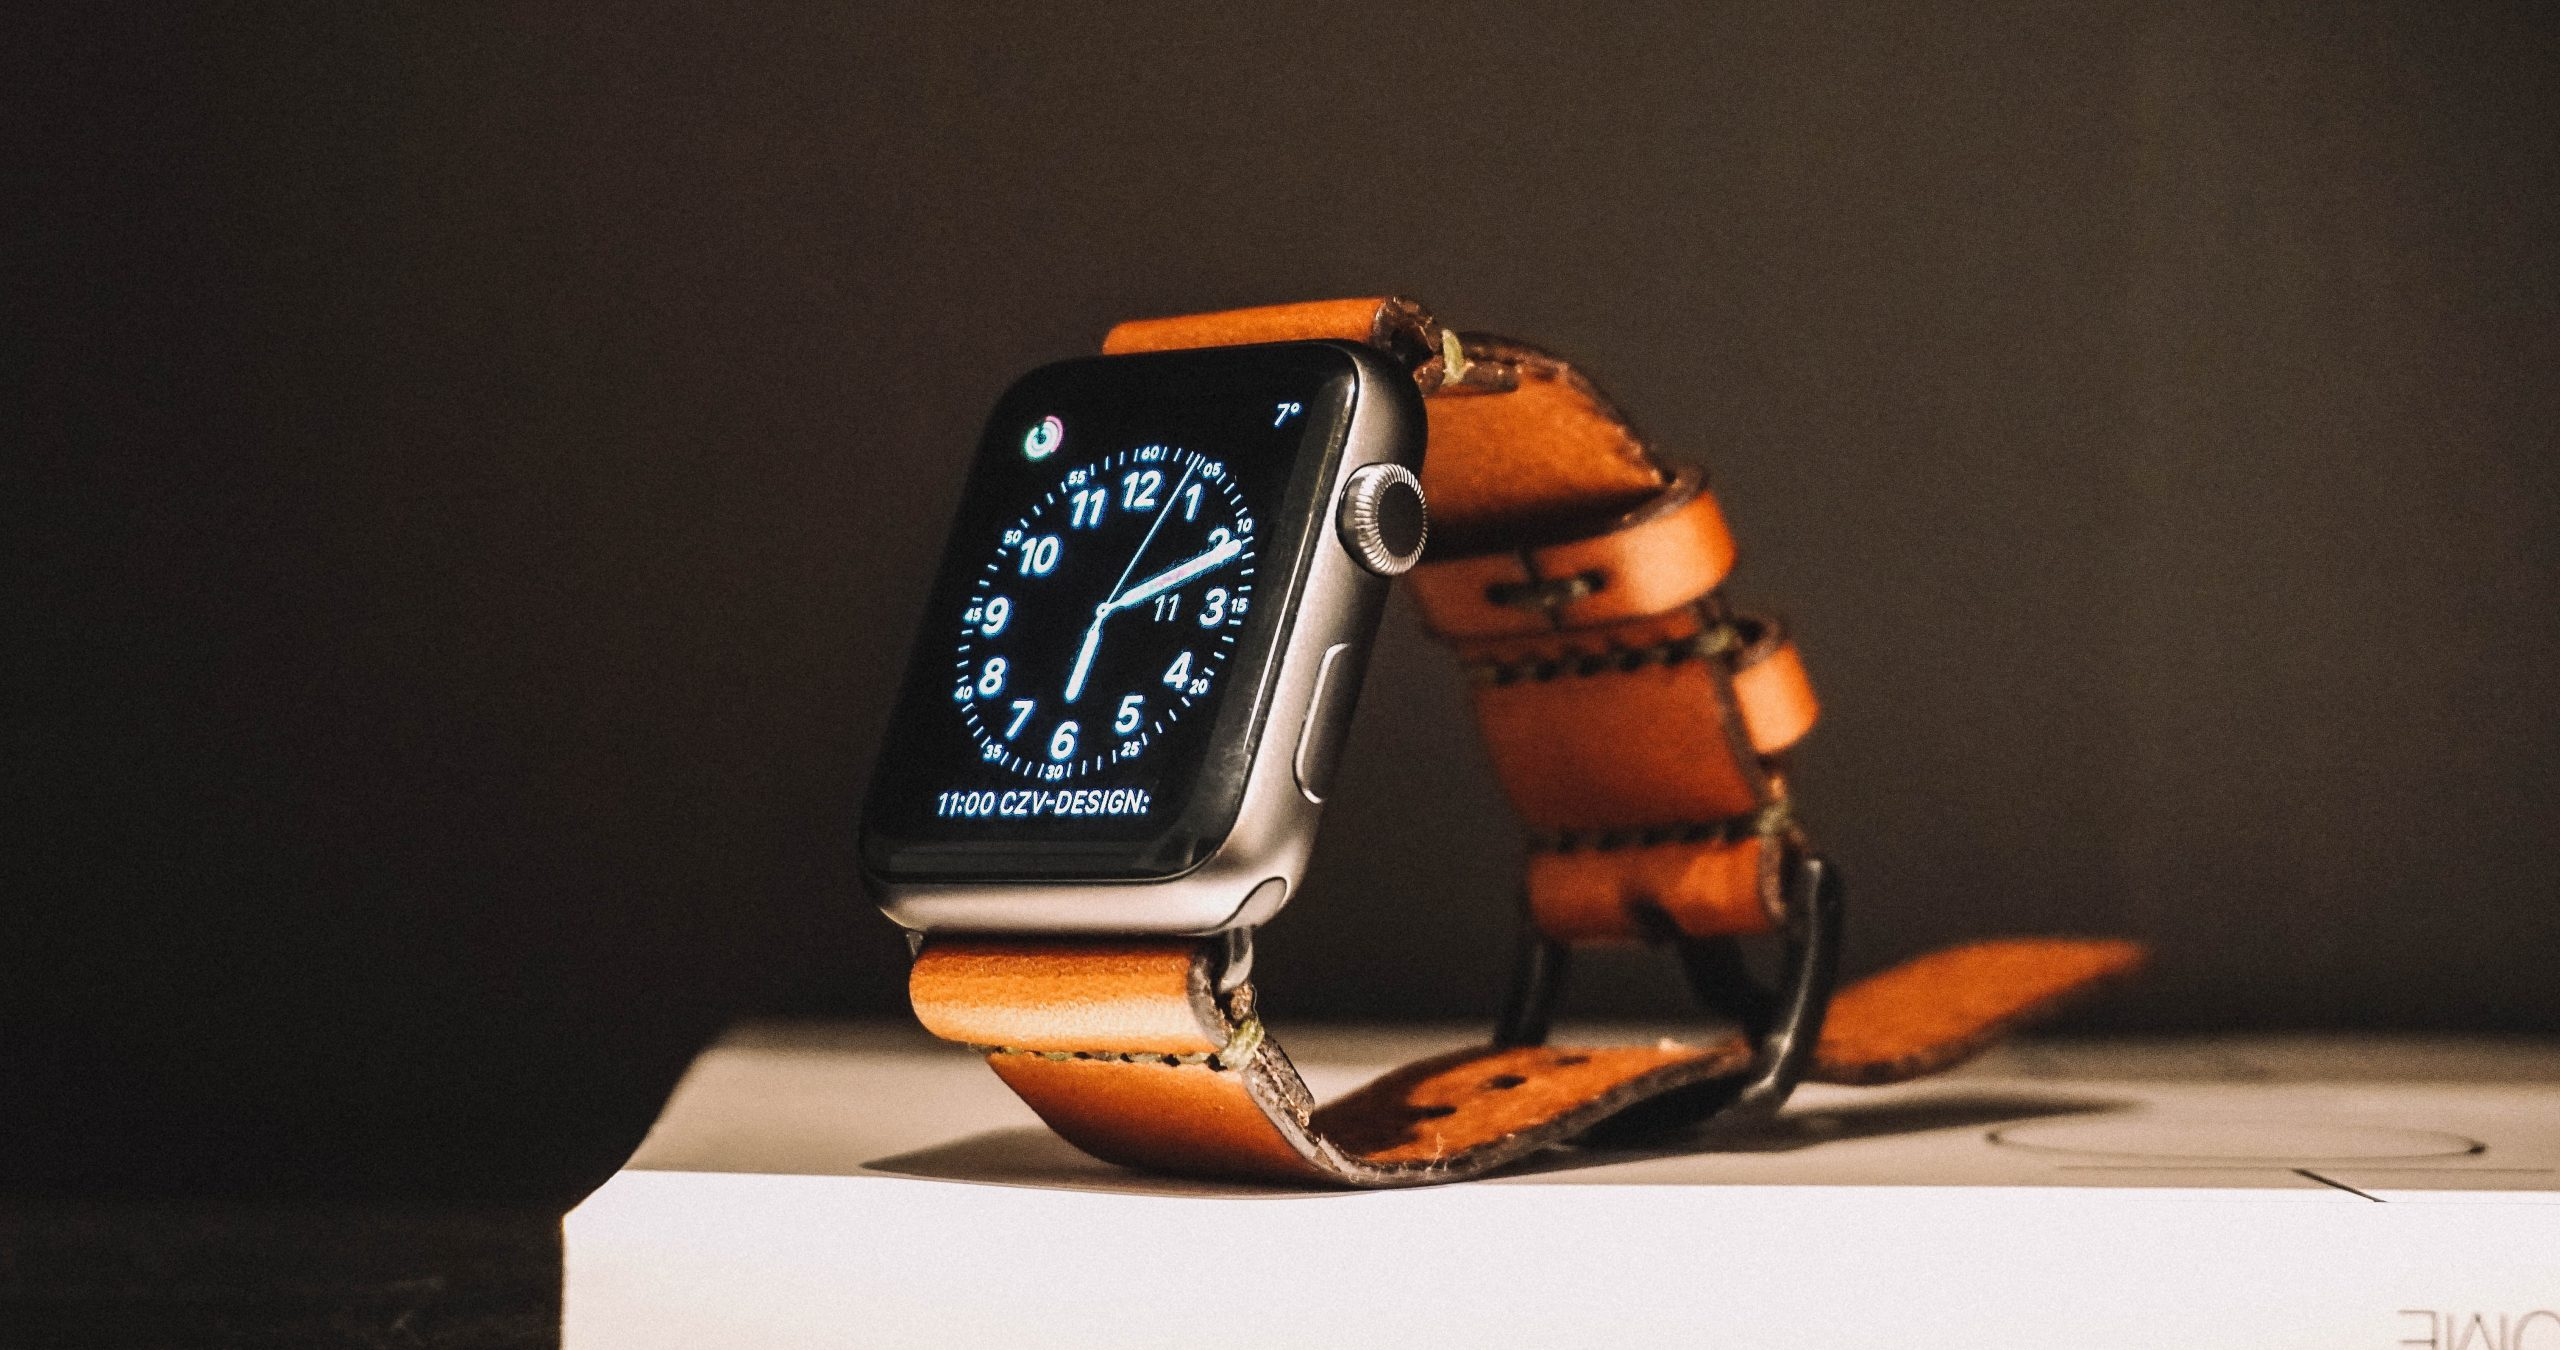 all apple watch bands are not waterproof